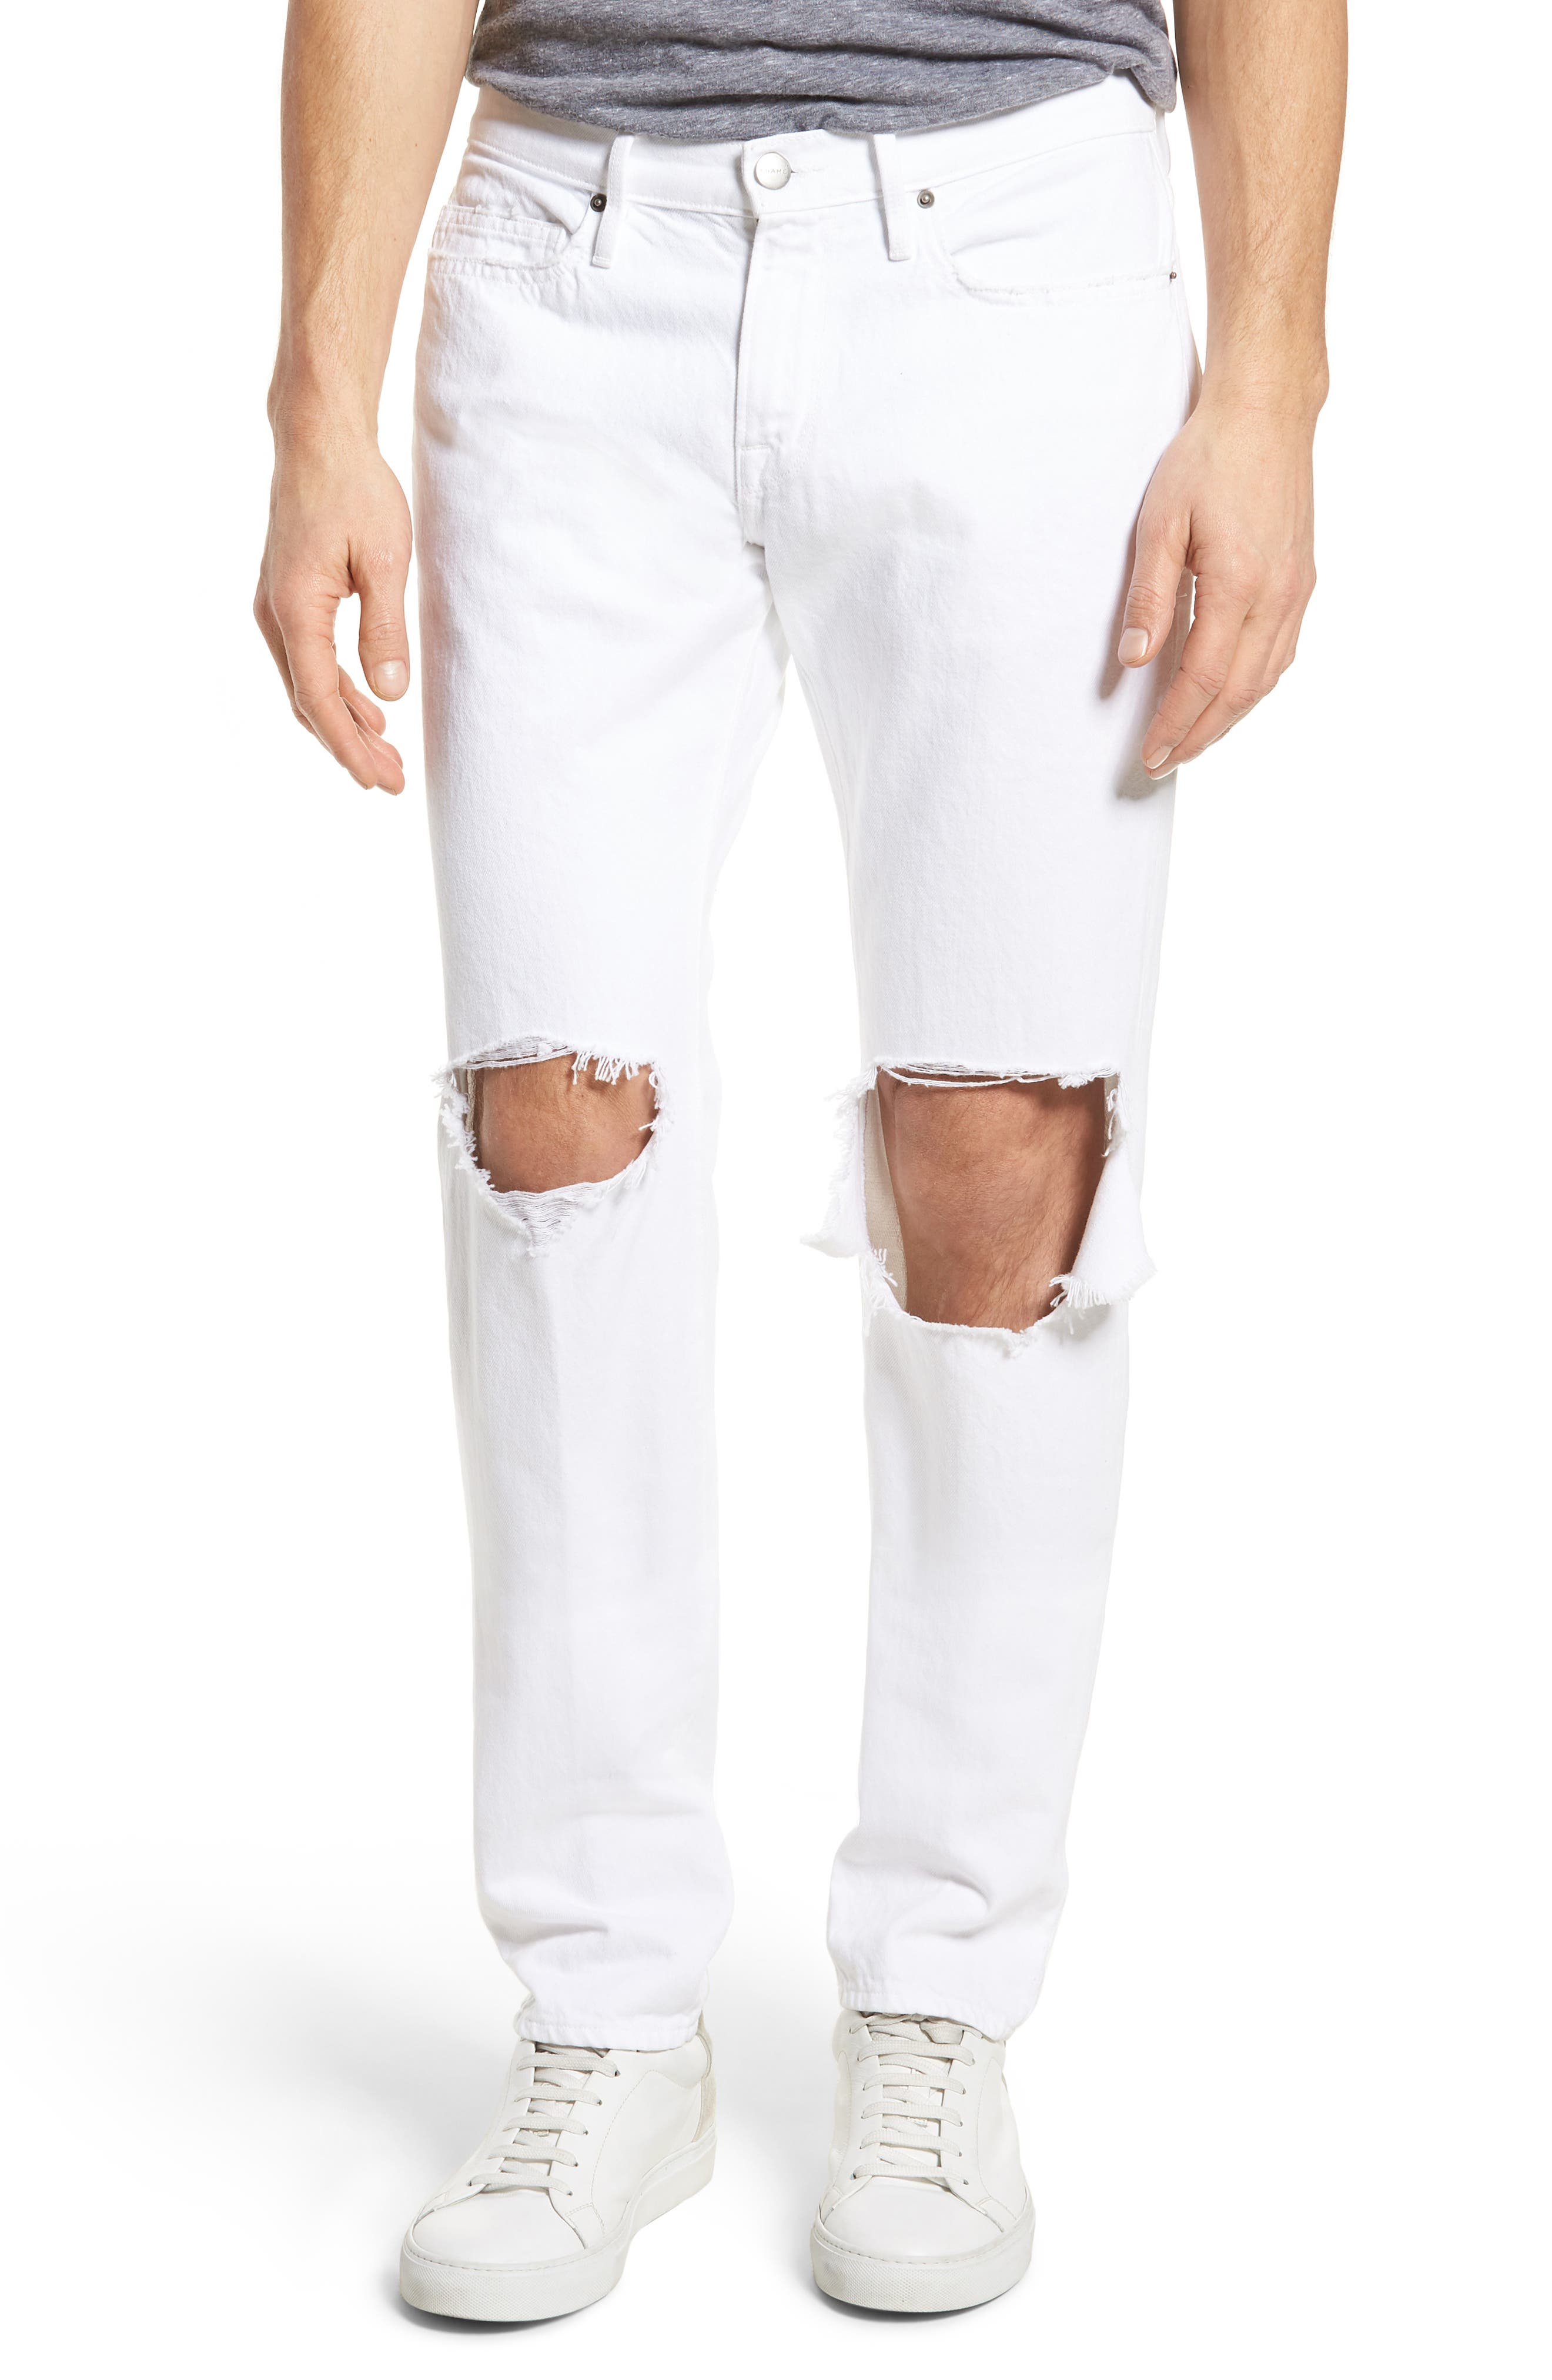 L'Homme Skinny Fit Jeans,                             Main thumbnail 1, color,                             White Out